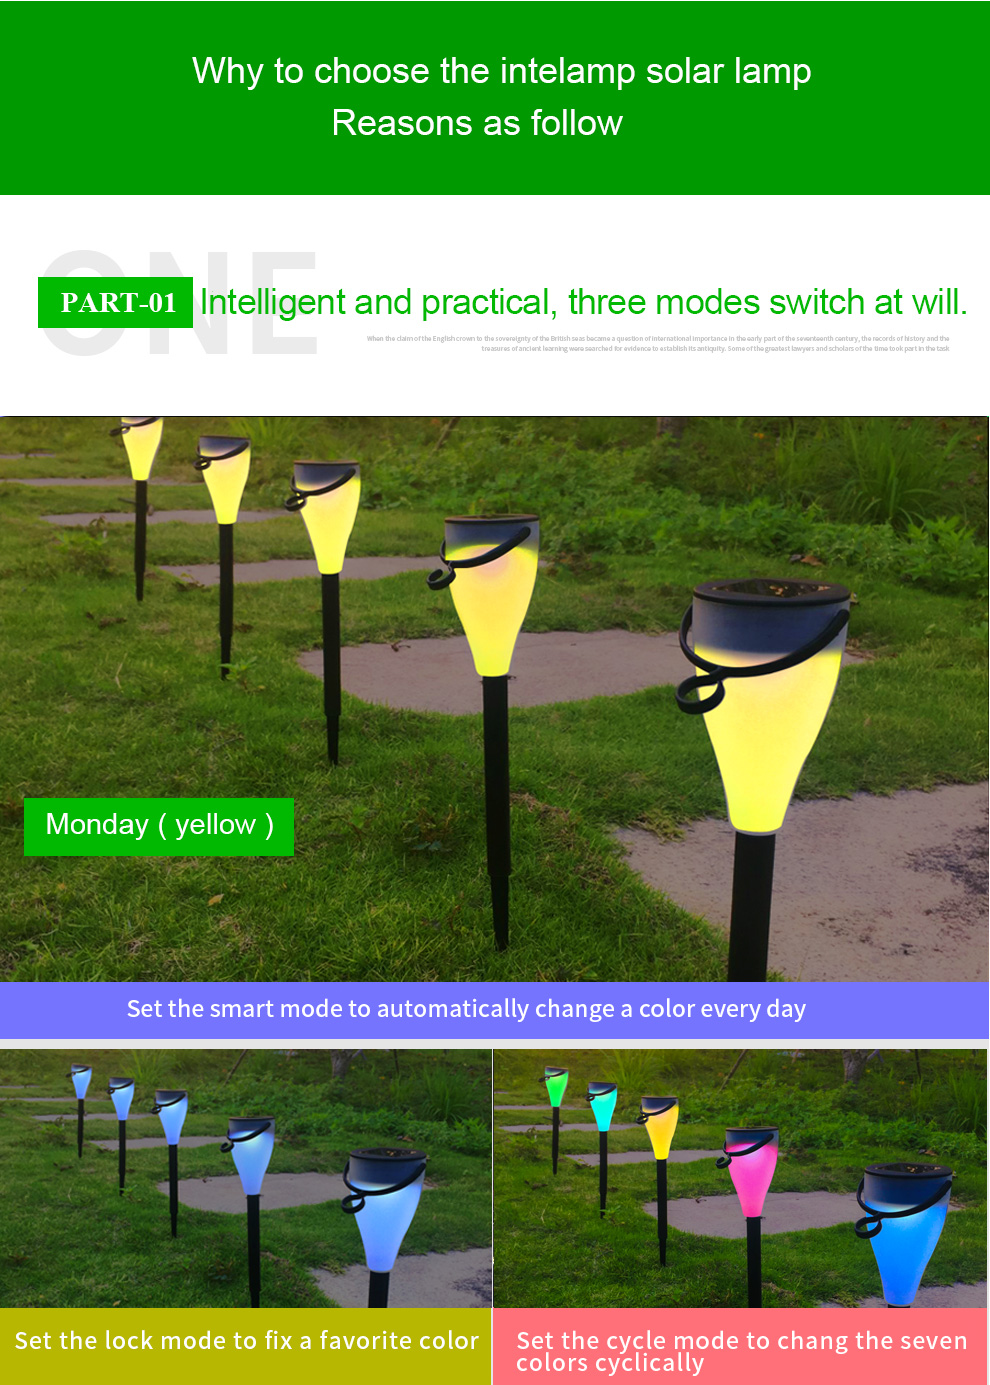 Best selling in USA for garden using solar powered lawn light parts in multi color switching supported by green nature energy